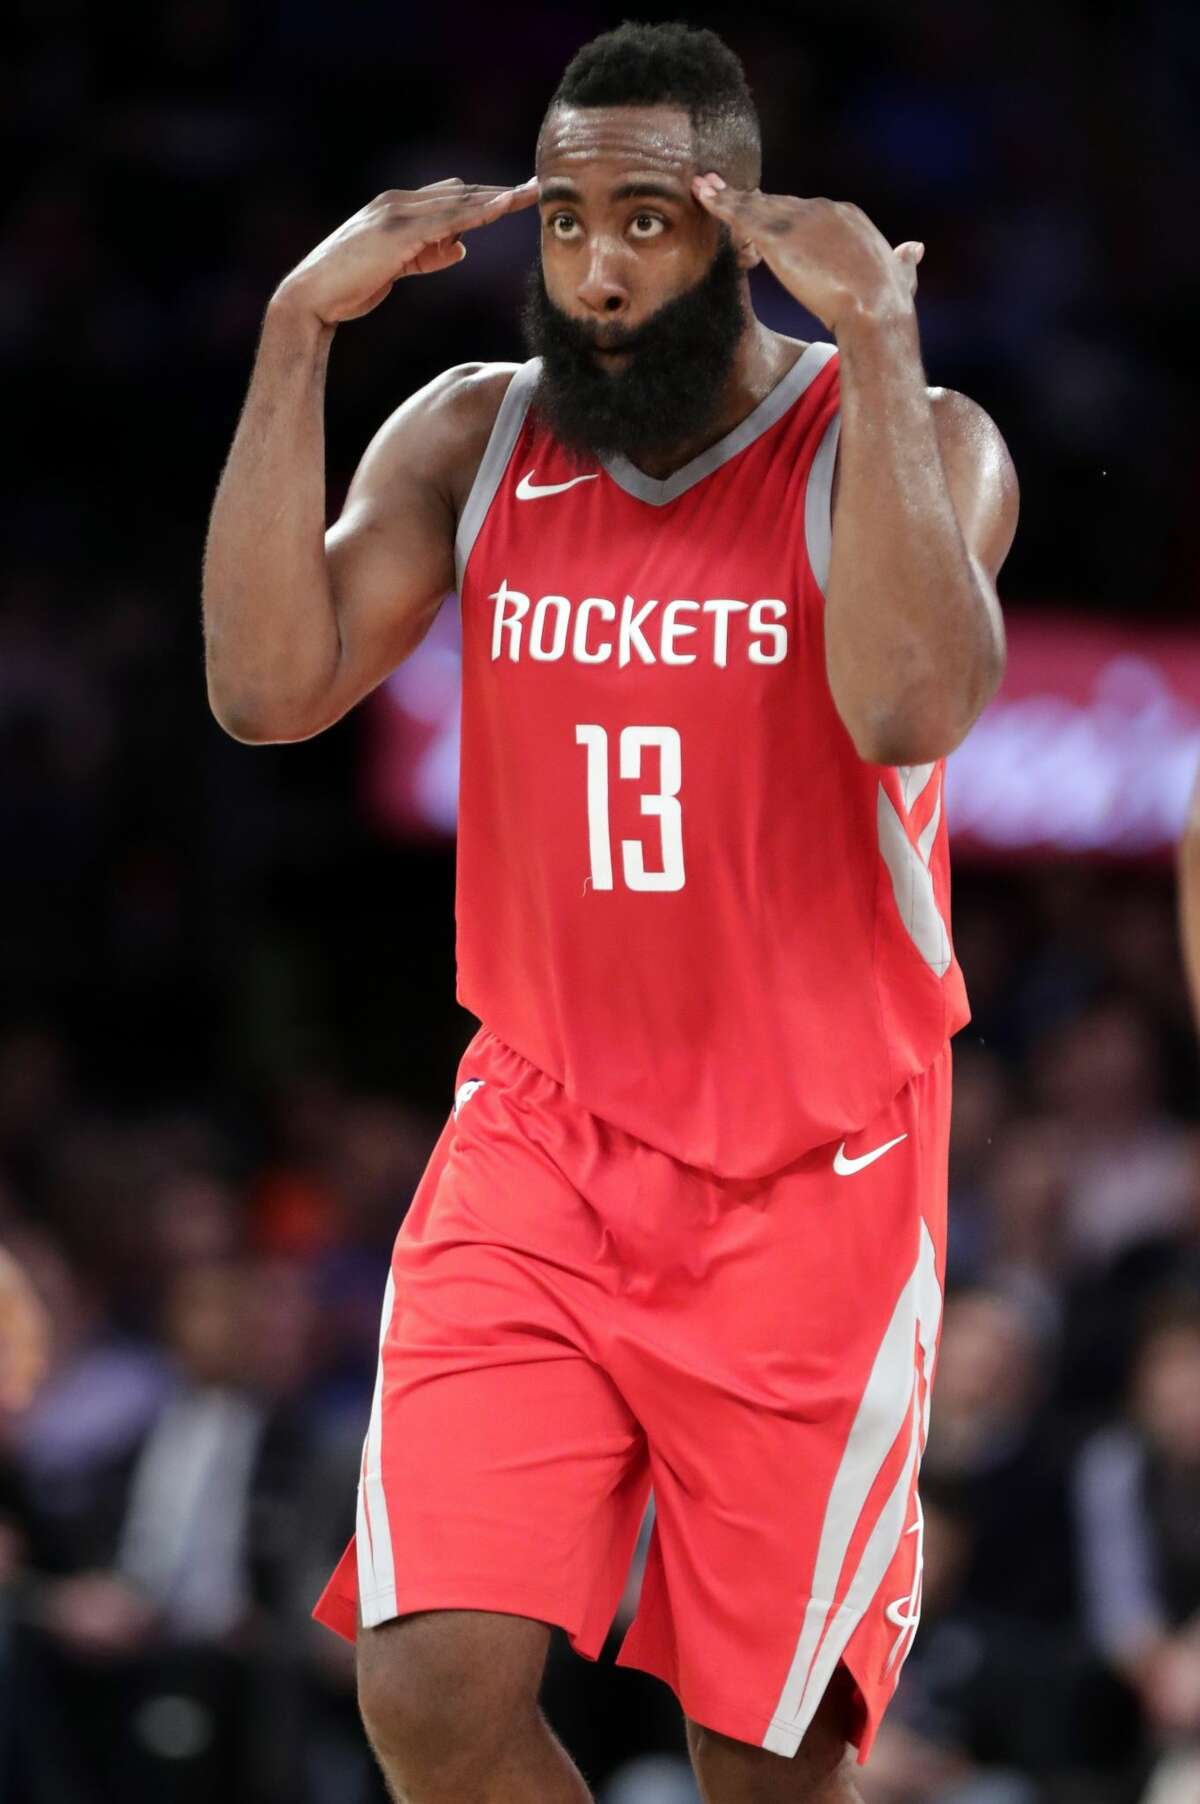 Houston Rockets' James Harden (13) celebrates after making a three point basket during the second half of an NBA basketball game against the New York Knicks Wednesday, Nov. 1, 2017, in New York. The Rockets won 119-97. (AP Photo/Frank Franklin II)